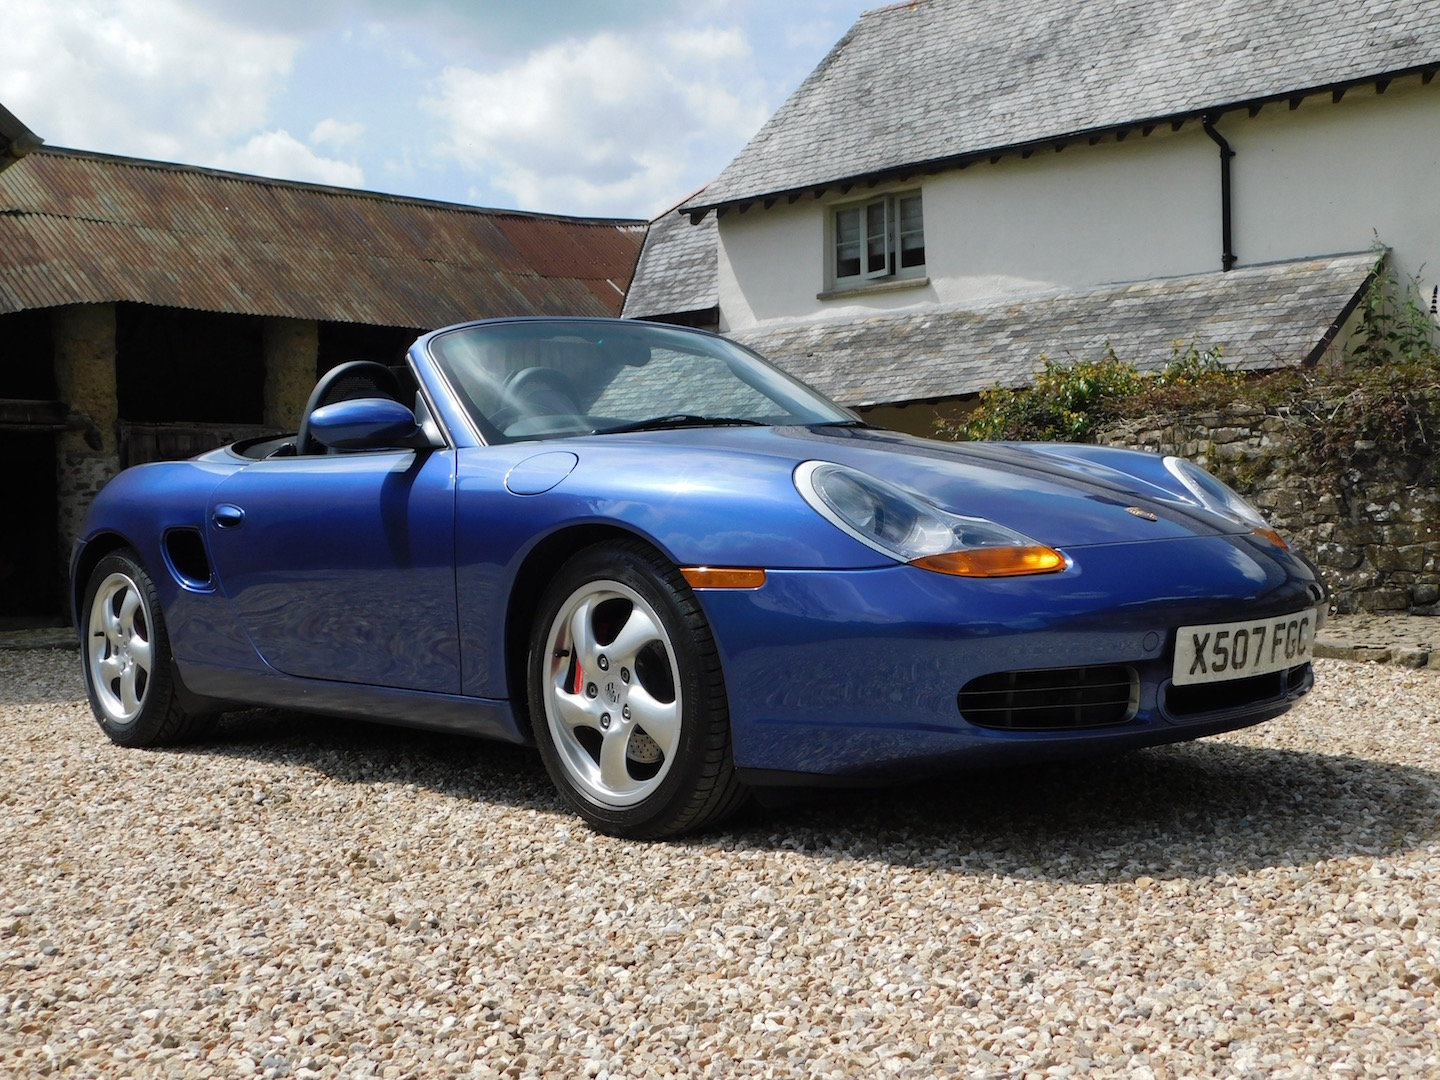 2000 Porsche 986 Boxster 3.2 S - 1 owner, 19k miles, concours For Sale (picture 1 of 6)